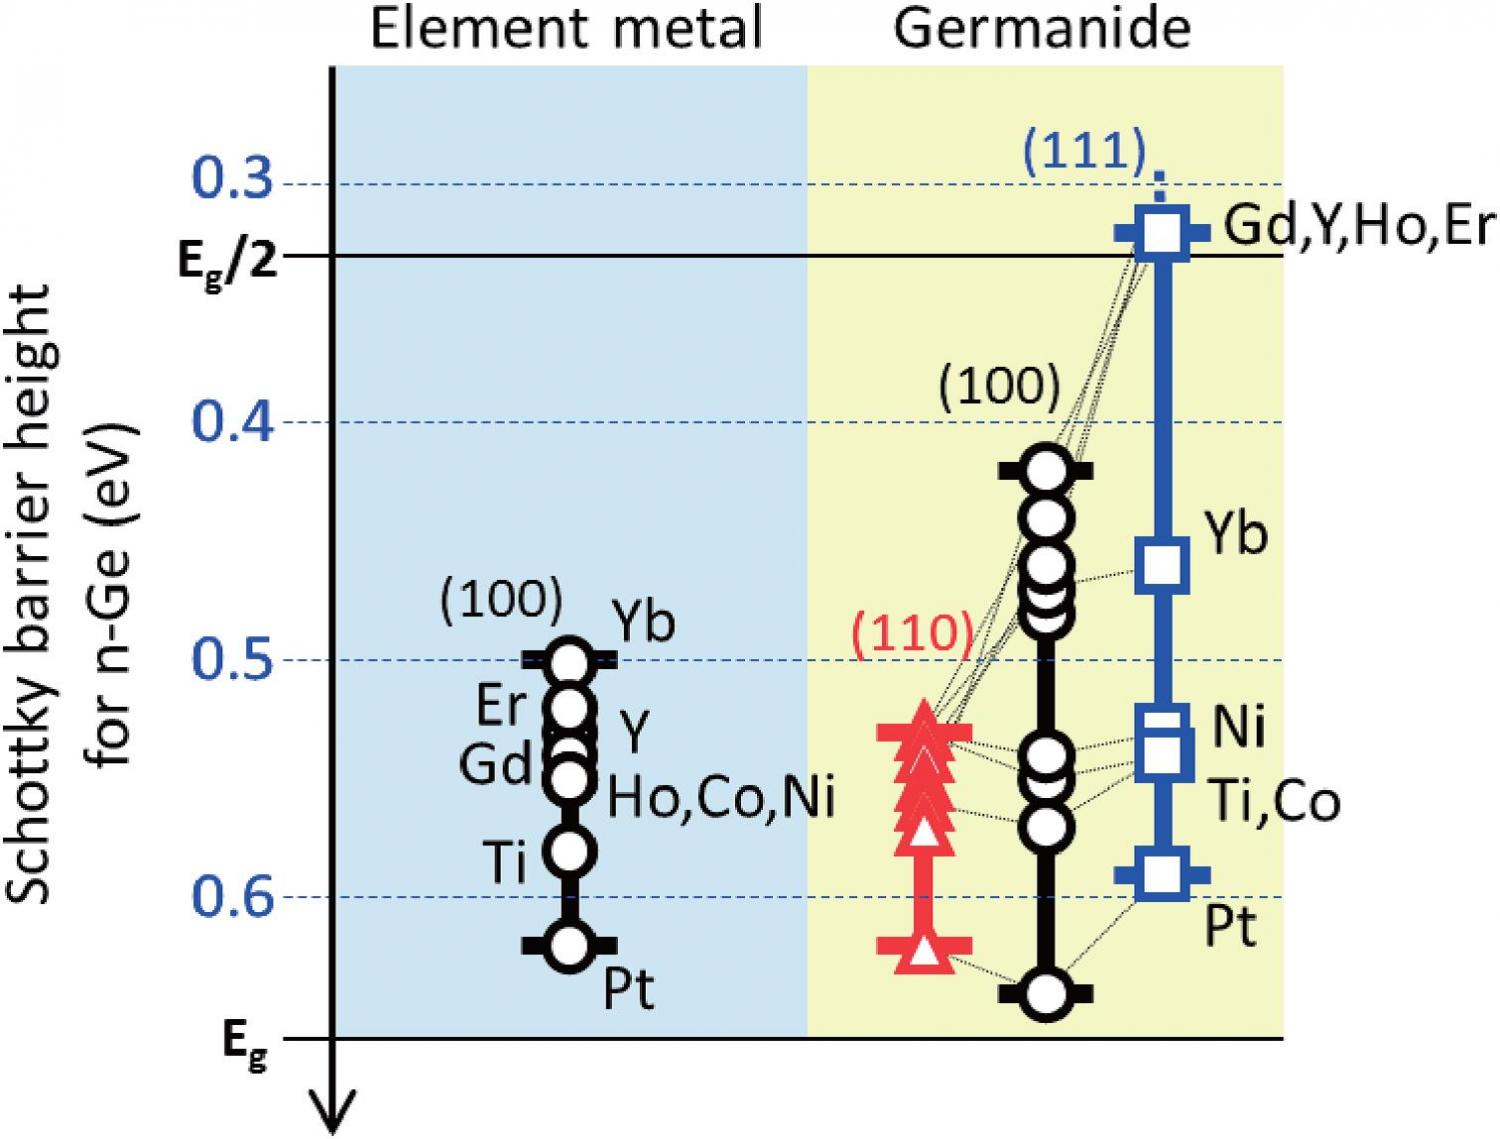 Characteristics of the chemical element of germanium